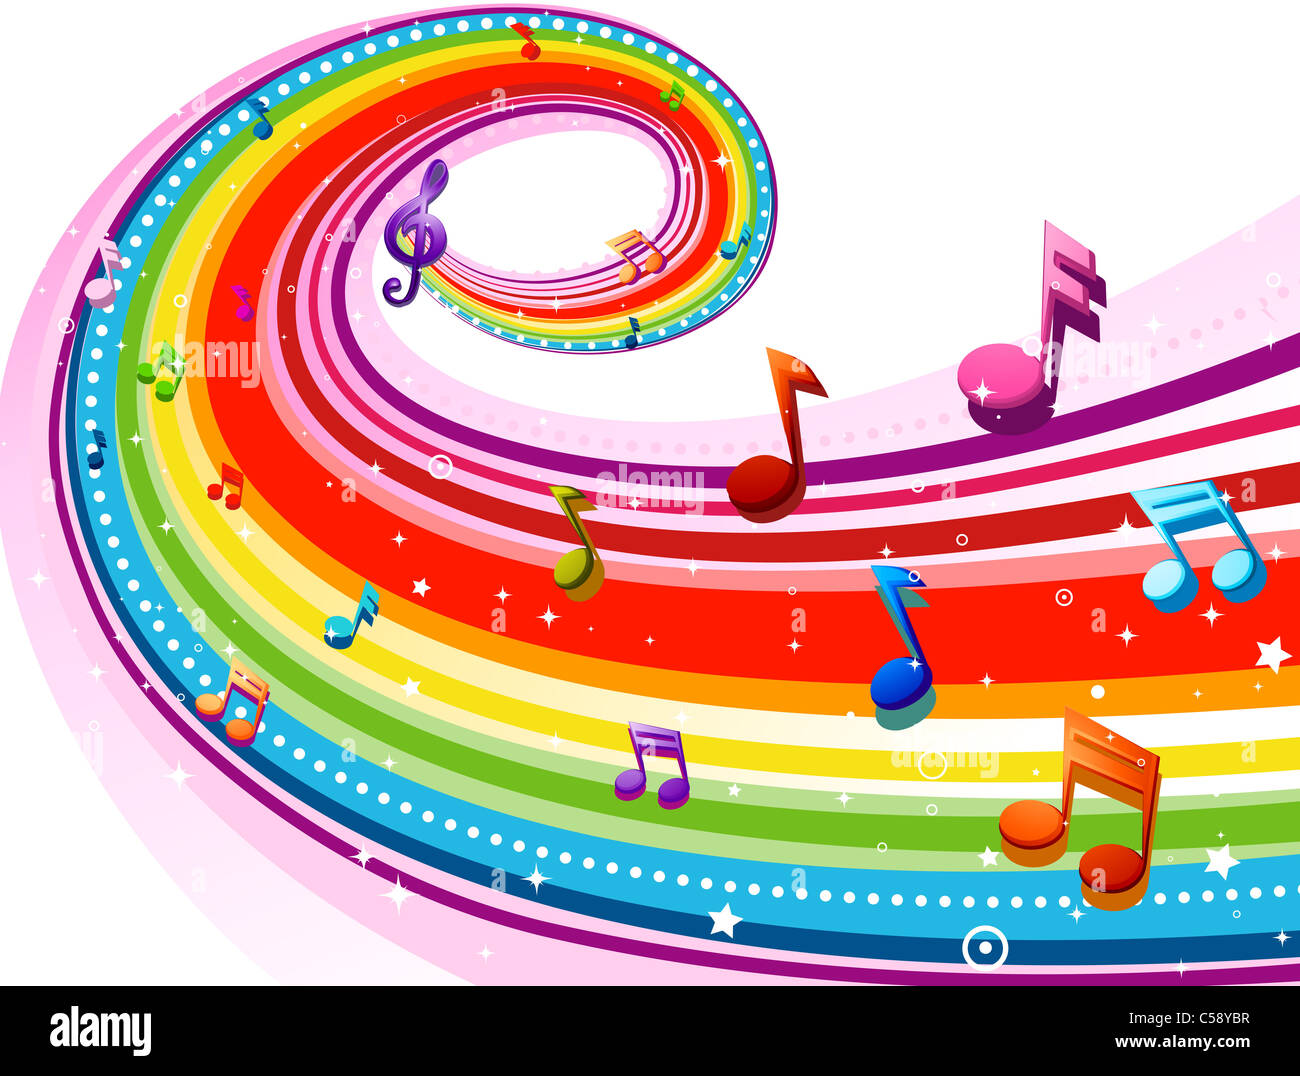 rainbow colored rainbow design with musical notes against white